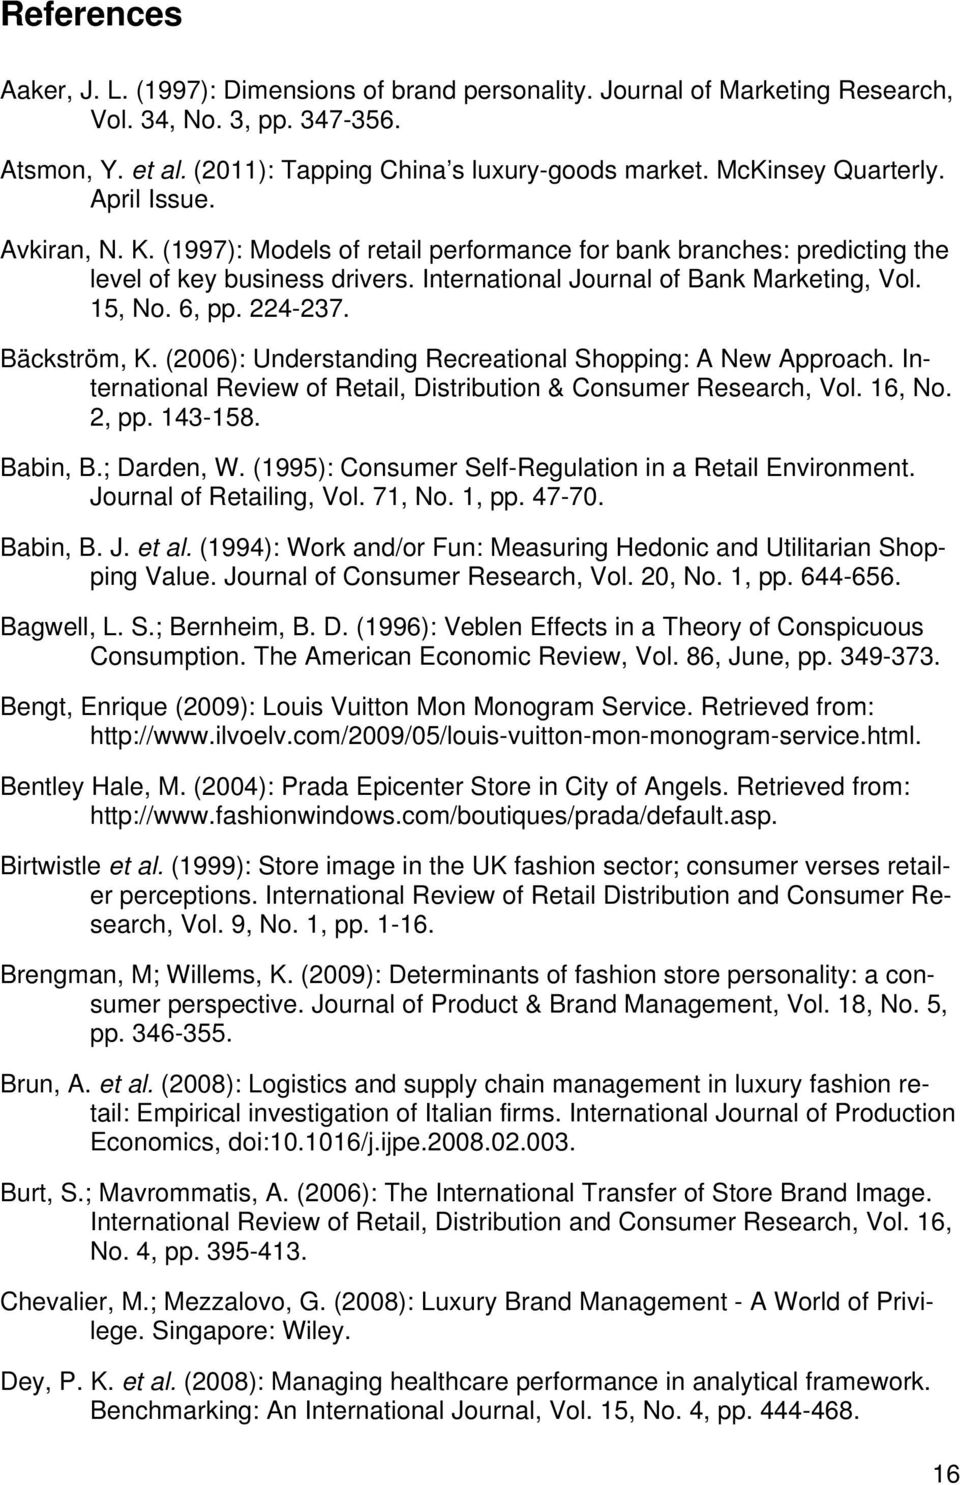 15, No. 6, pp. 224-237. Bäckström, K. (2006): Understanding Recreational Shopping: A New Approach. International Review of Retail, Distribution & Consumer Research, Vol. 16, No. 2, pp. 143-158.